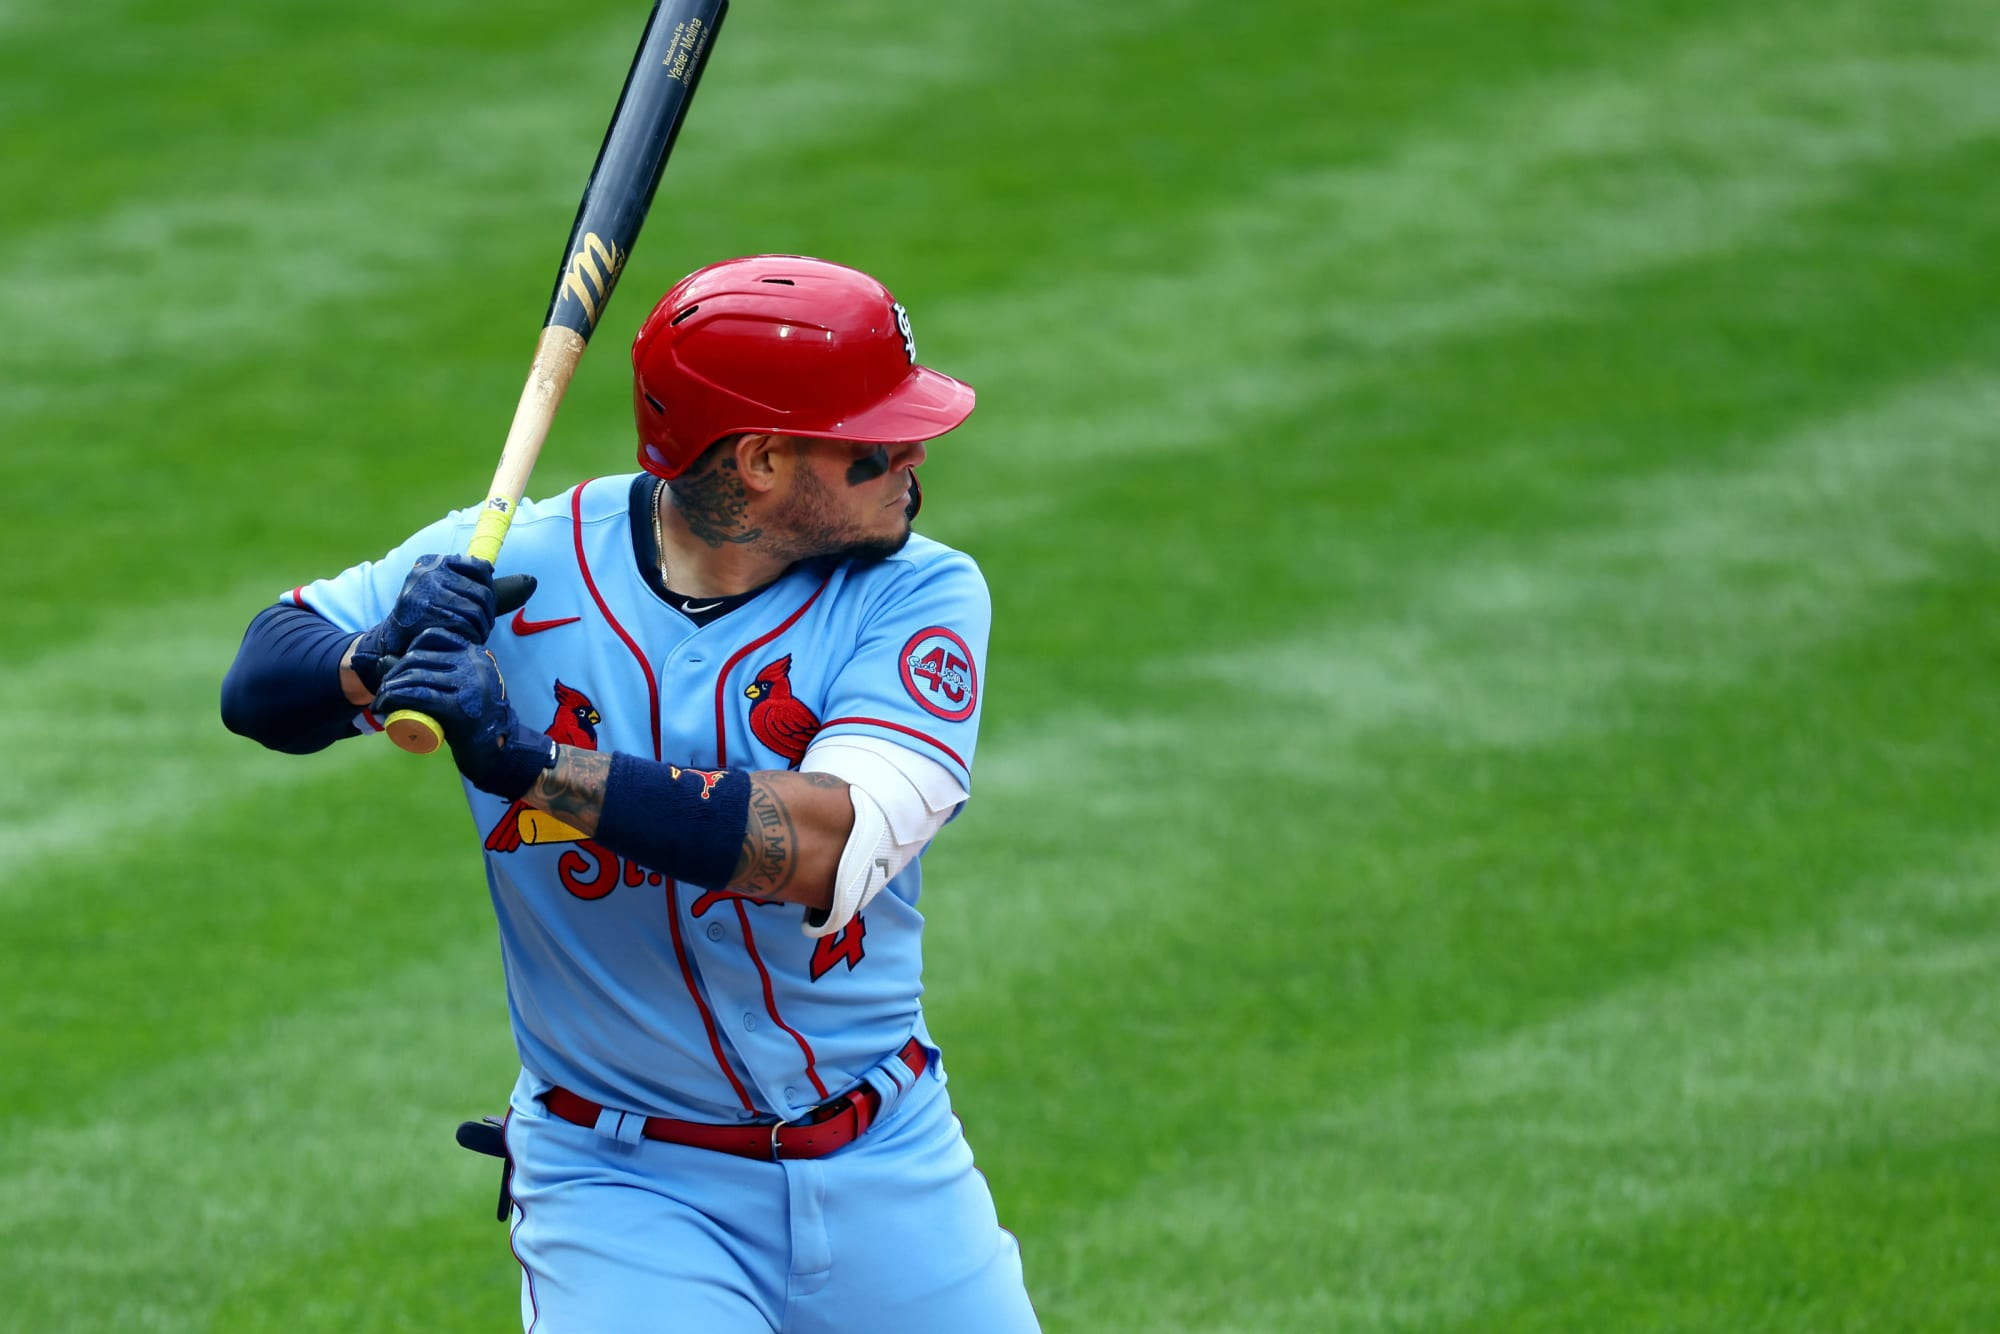 St Louis Cardinals News: Yadier Molina is back from the IL